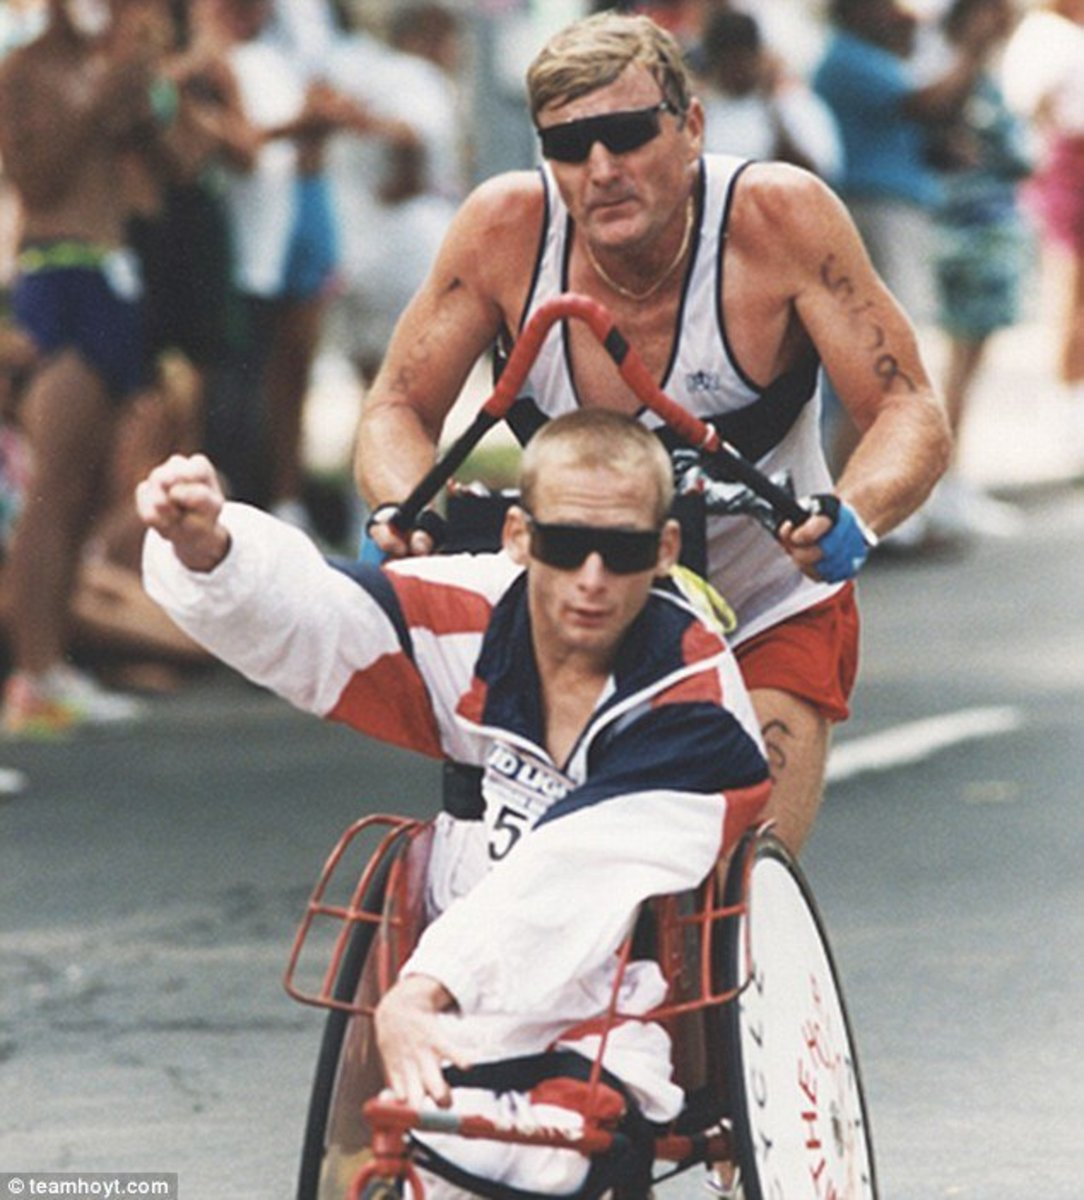 Dick and Rick Hoyt in an Ironman Triathlon.